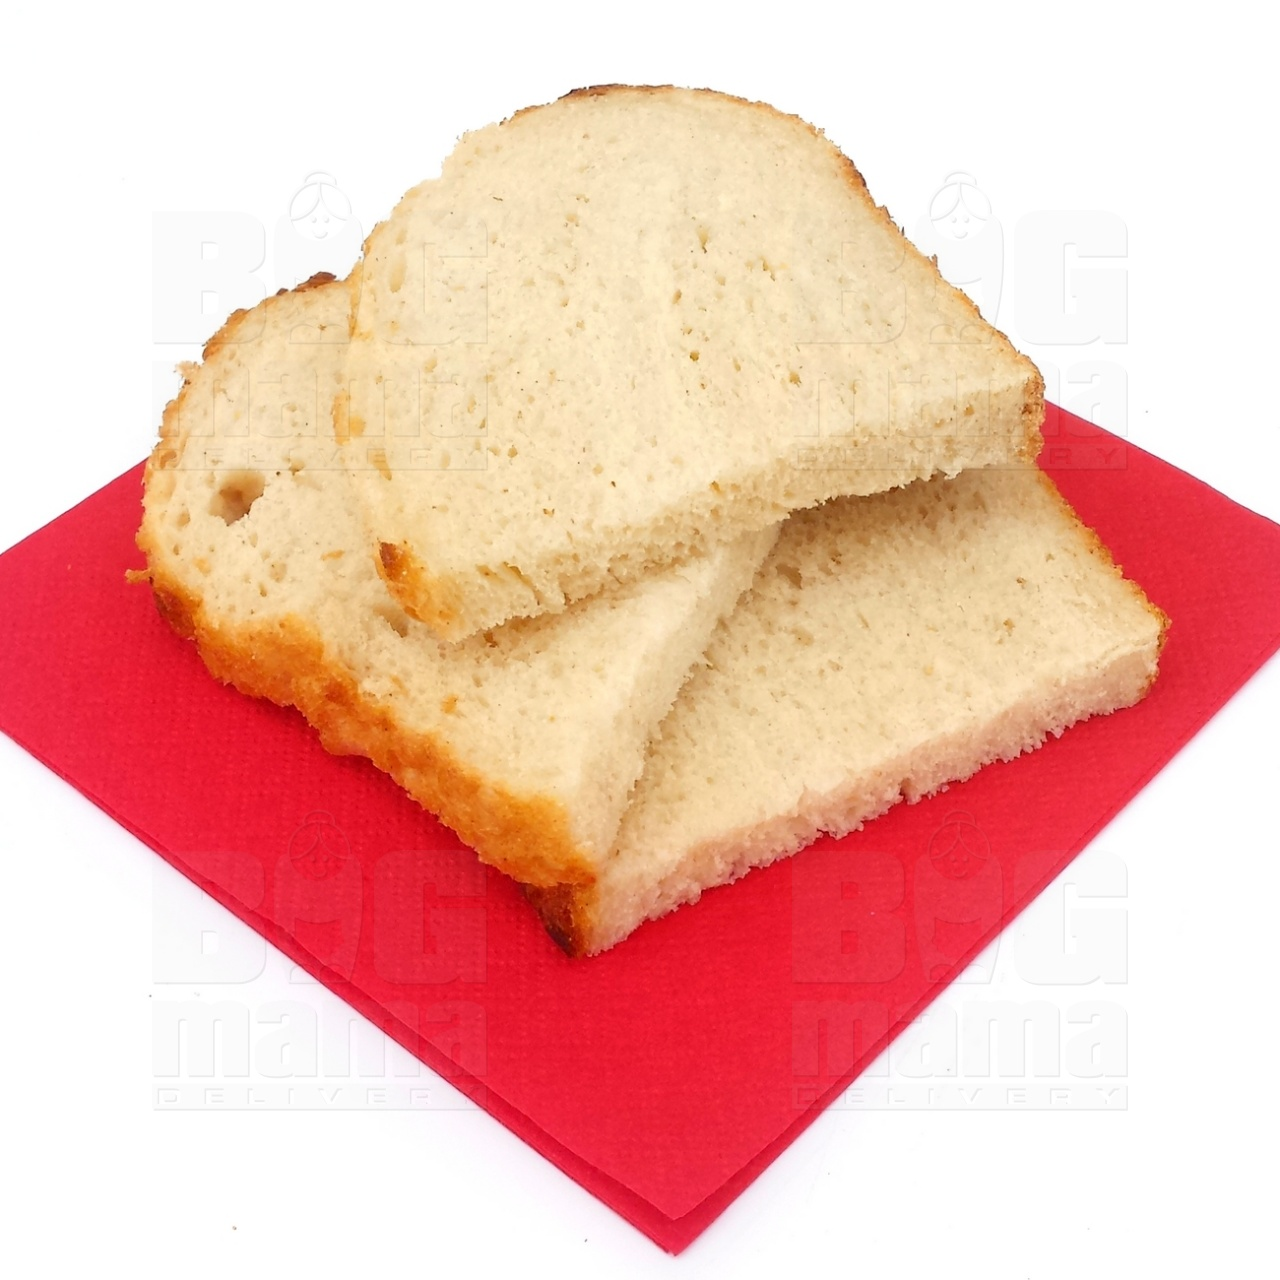 Product #67 image - Sliced bread